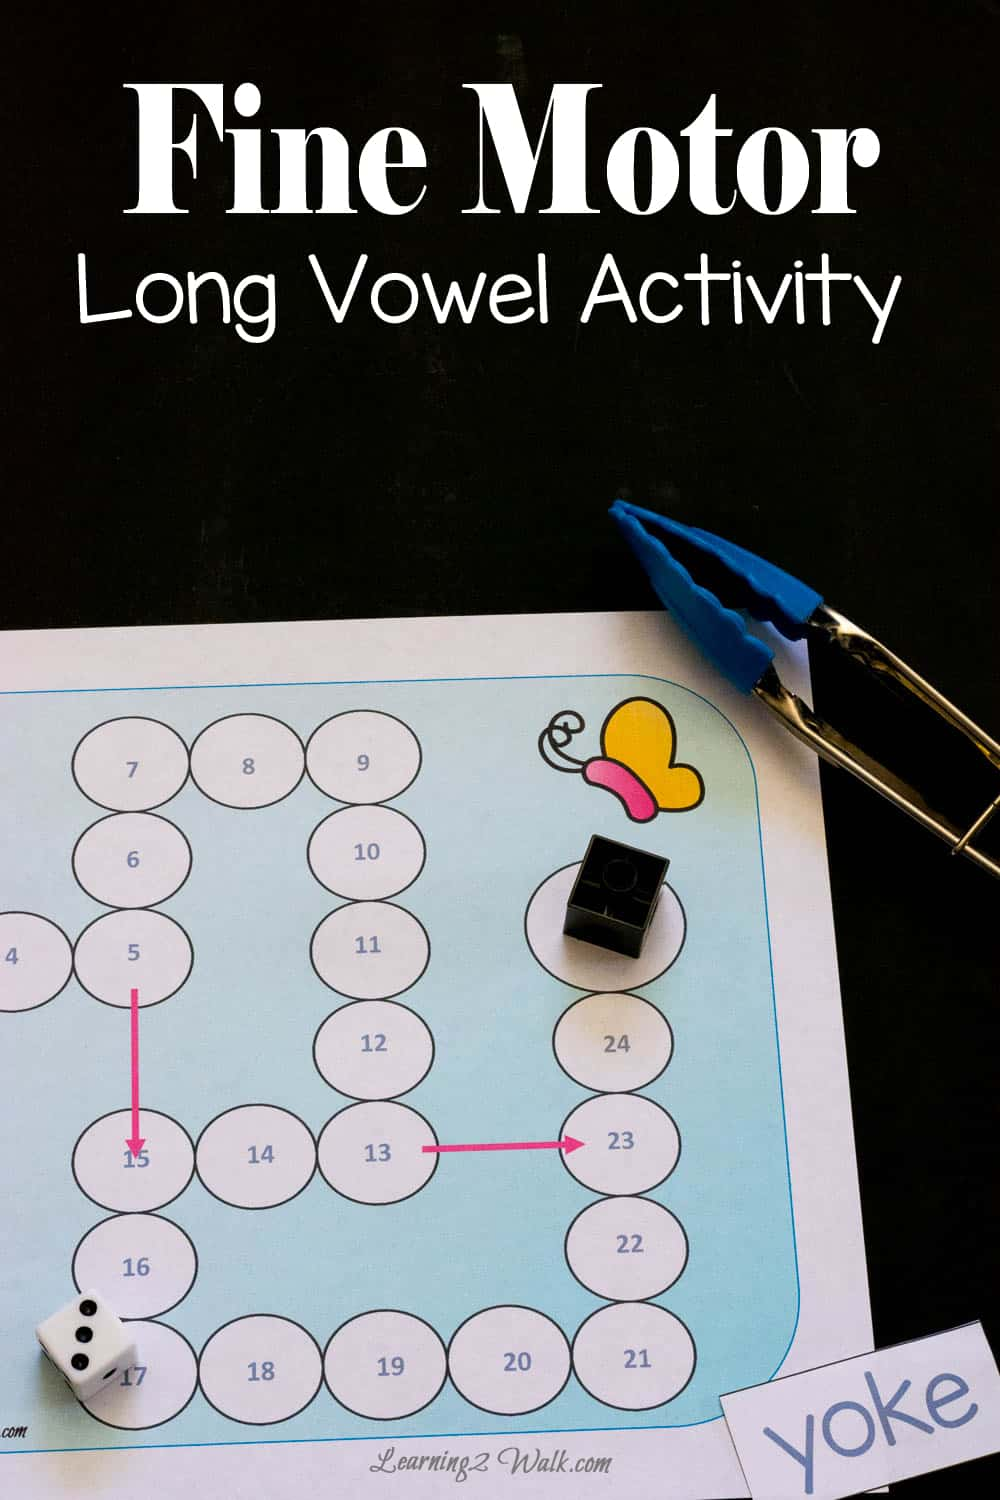 Fine Motor Long Vowel Activity